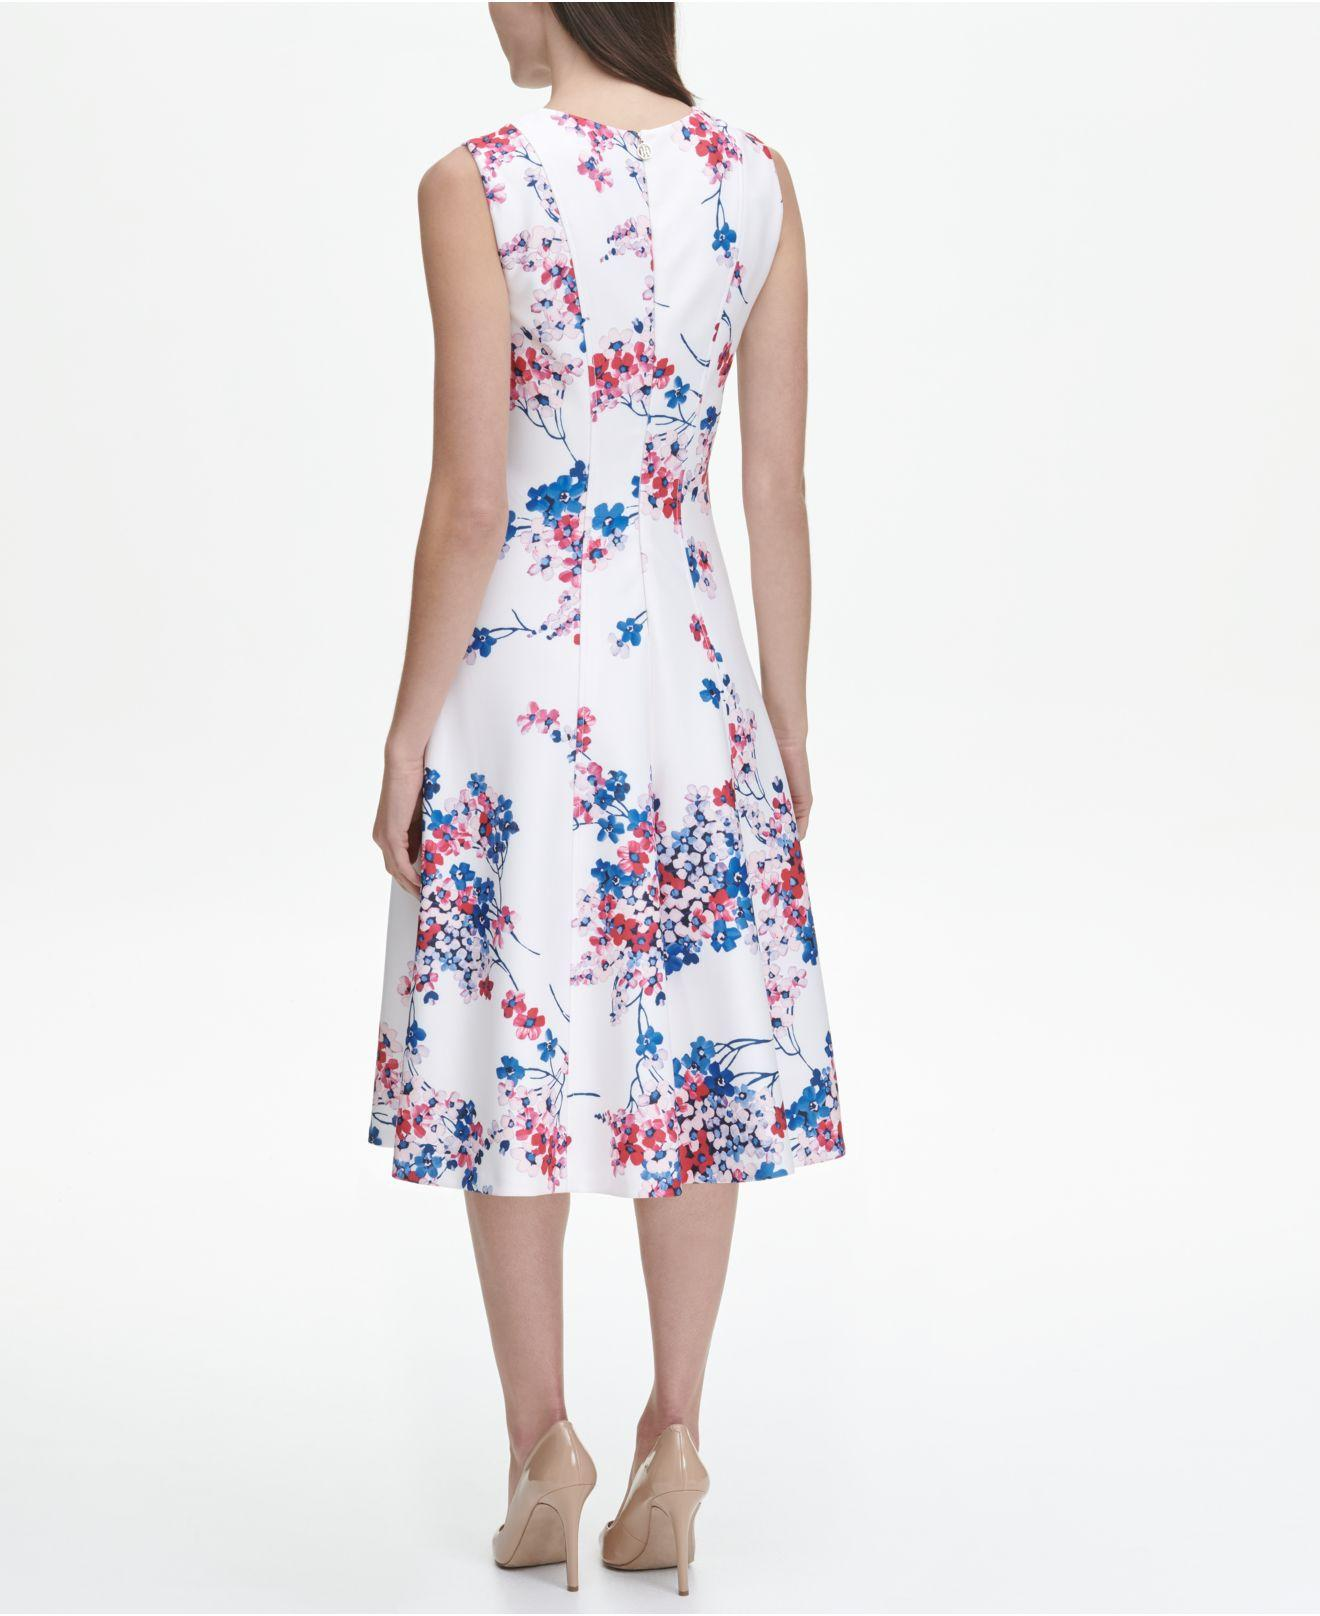 42d50aa3592f Lyst - Tommy Hilfiger Eloise Floral Sleeveless Scuba Fit And Flare Midi  Dress in Blue